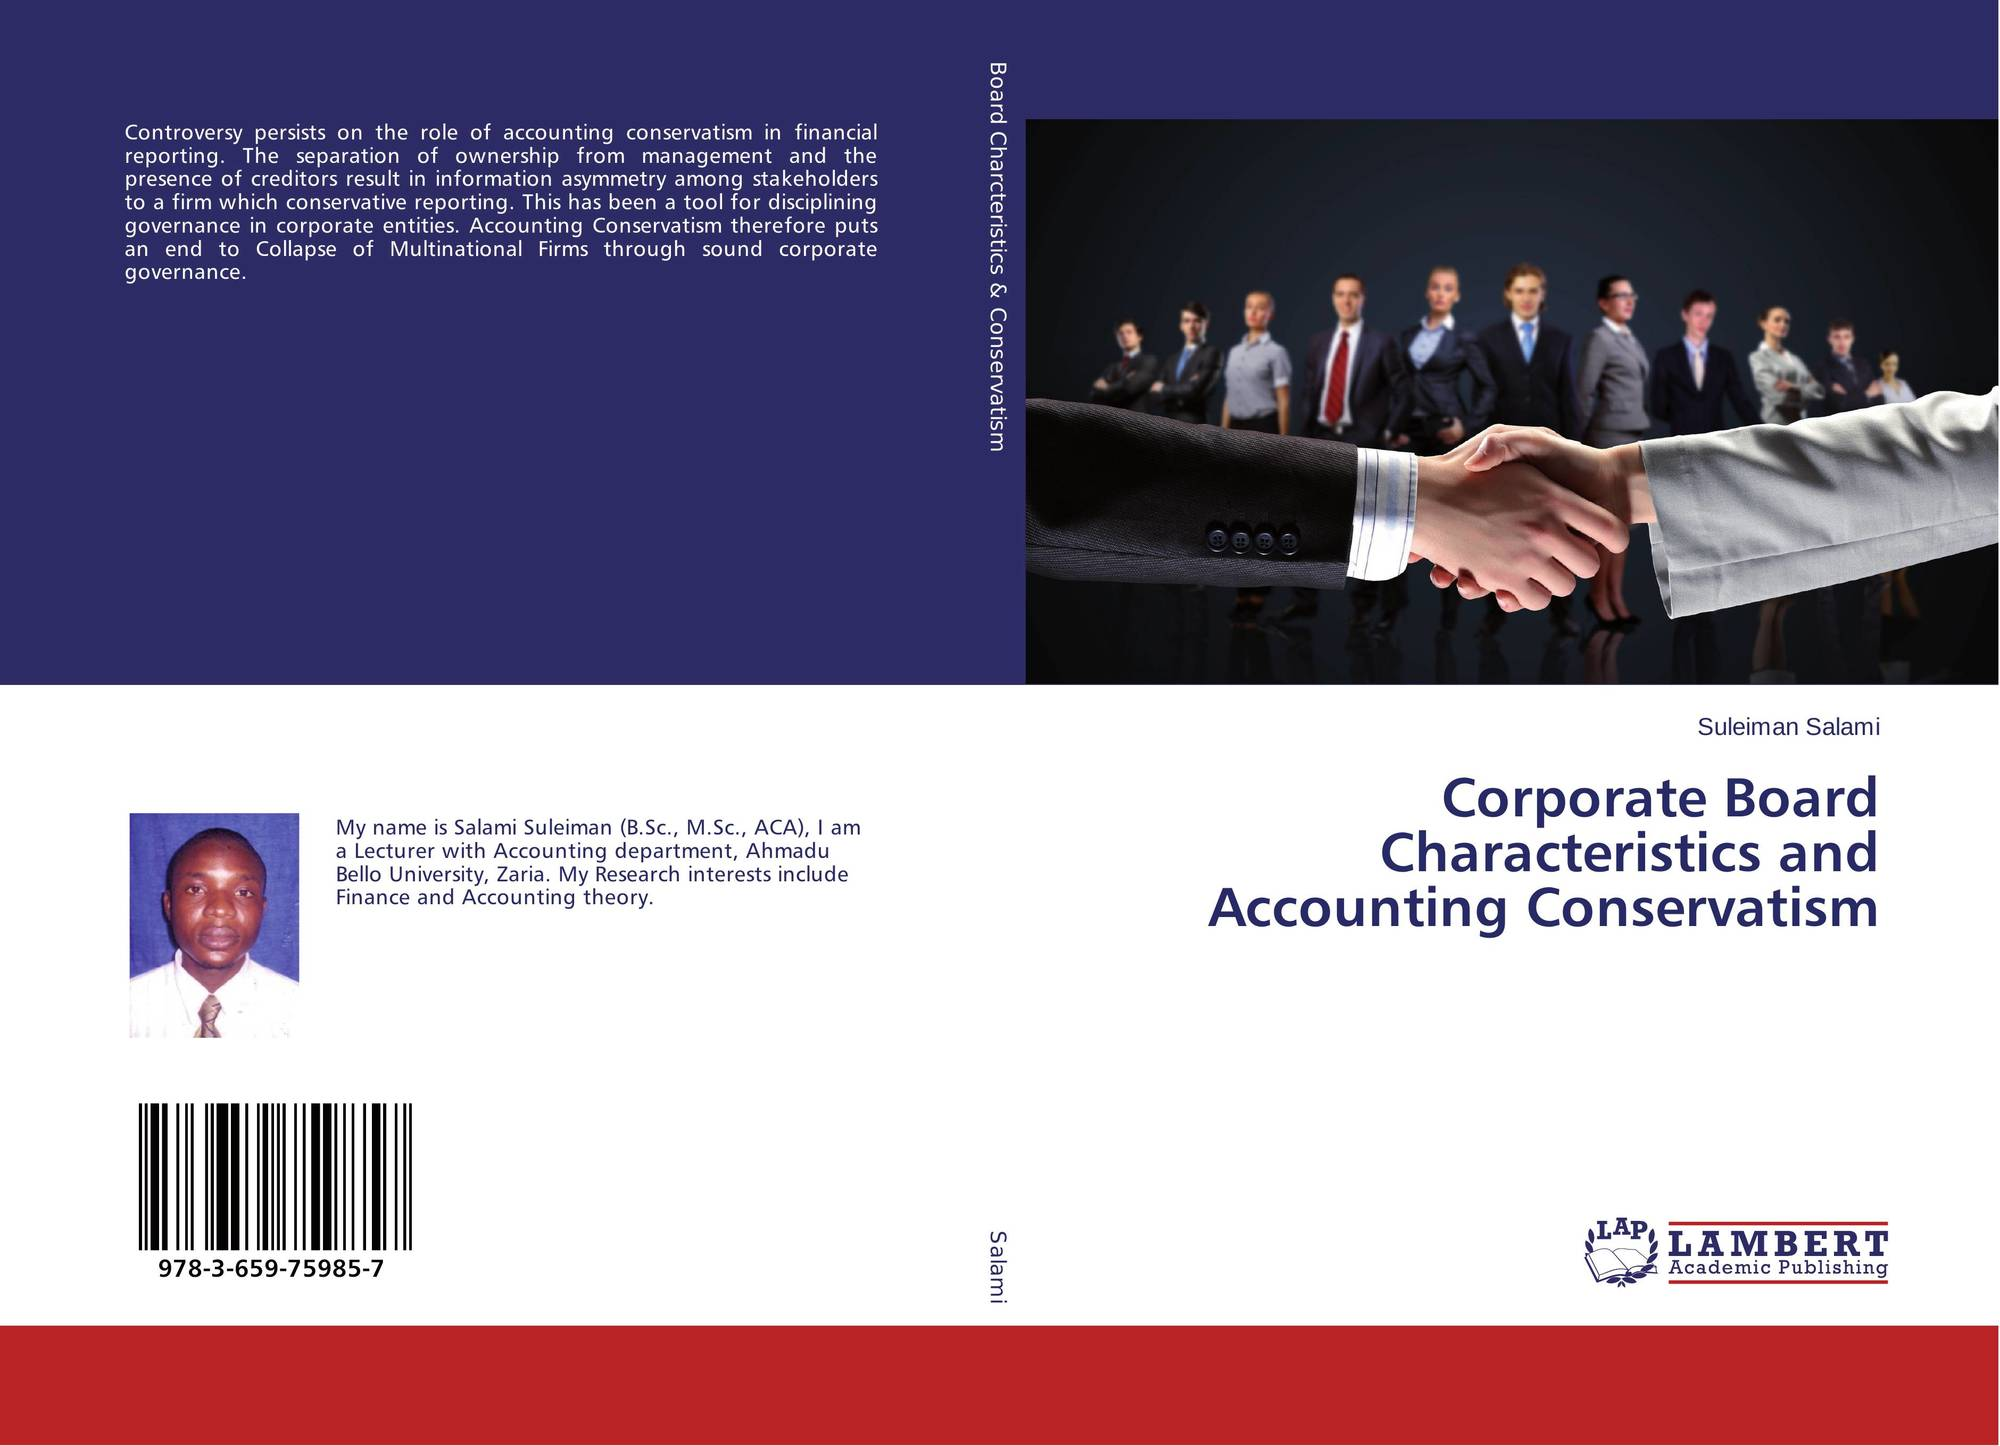 corporate finance aig accounting scandal essay Accounting fraud at worldcom download print sullivan devised a creative solution which started identifying costs of excess network capacity as capital expenditure andersen's auditors were given limited access to the accounting information.